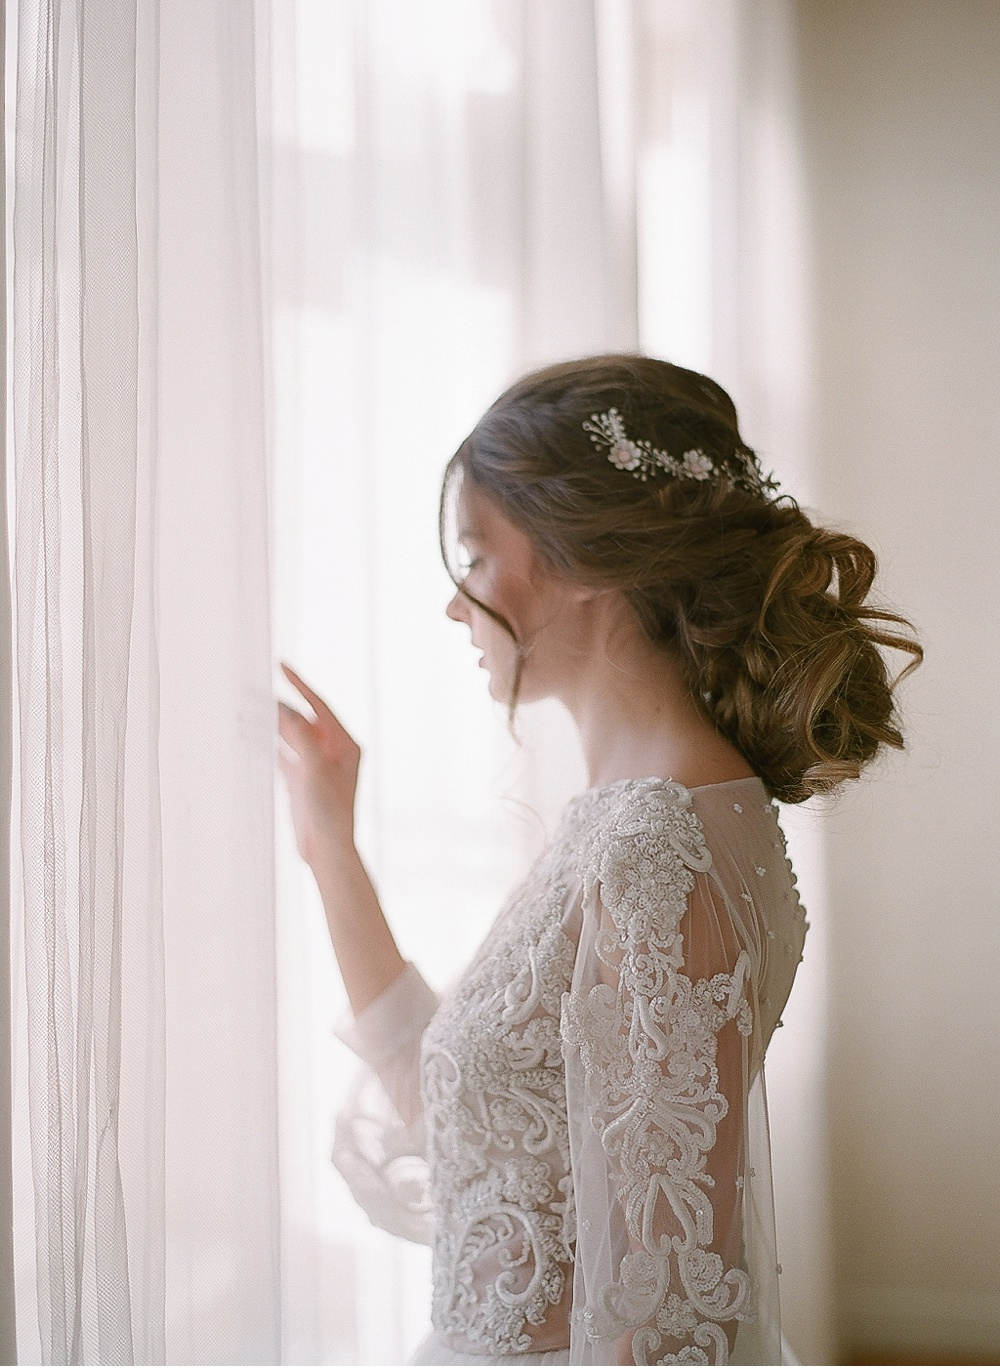 FineArt_Bridal_Shooting__0012.jpg